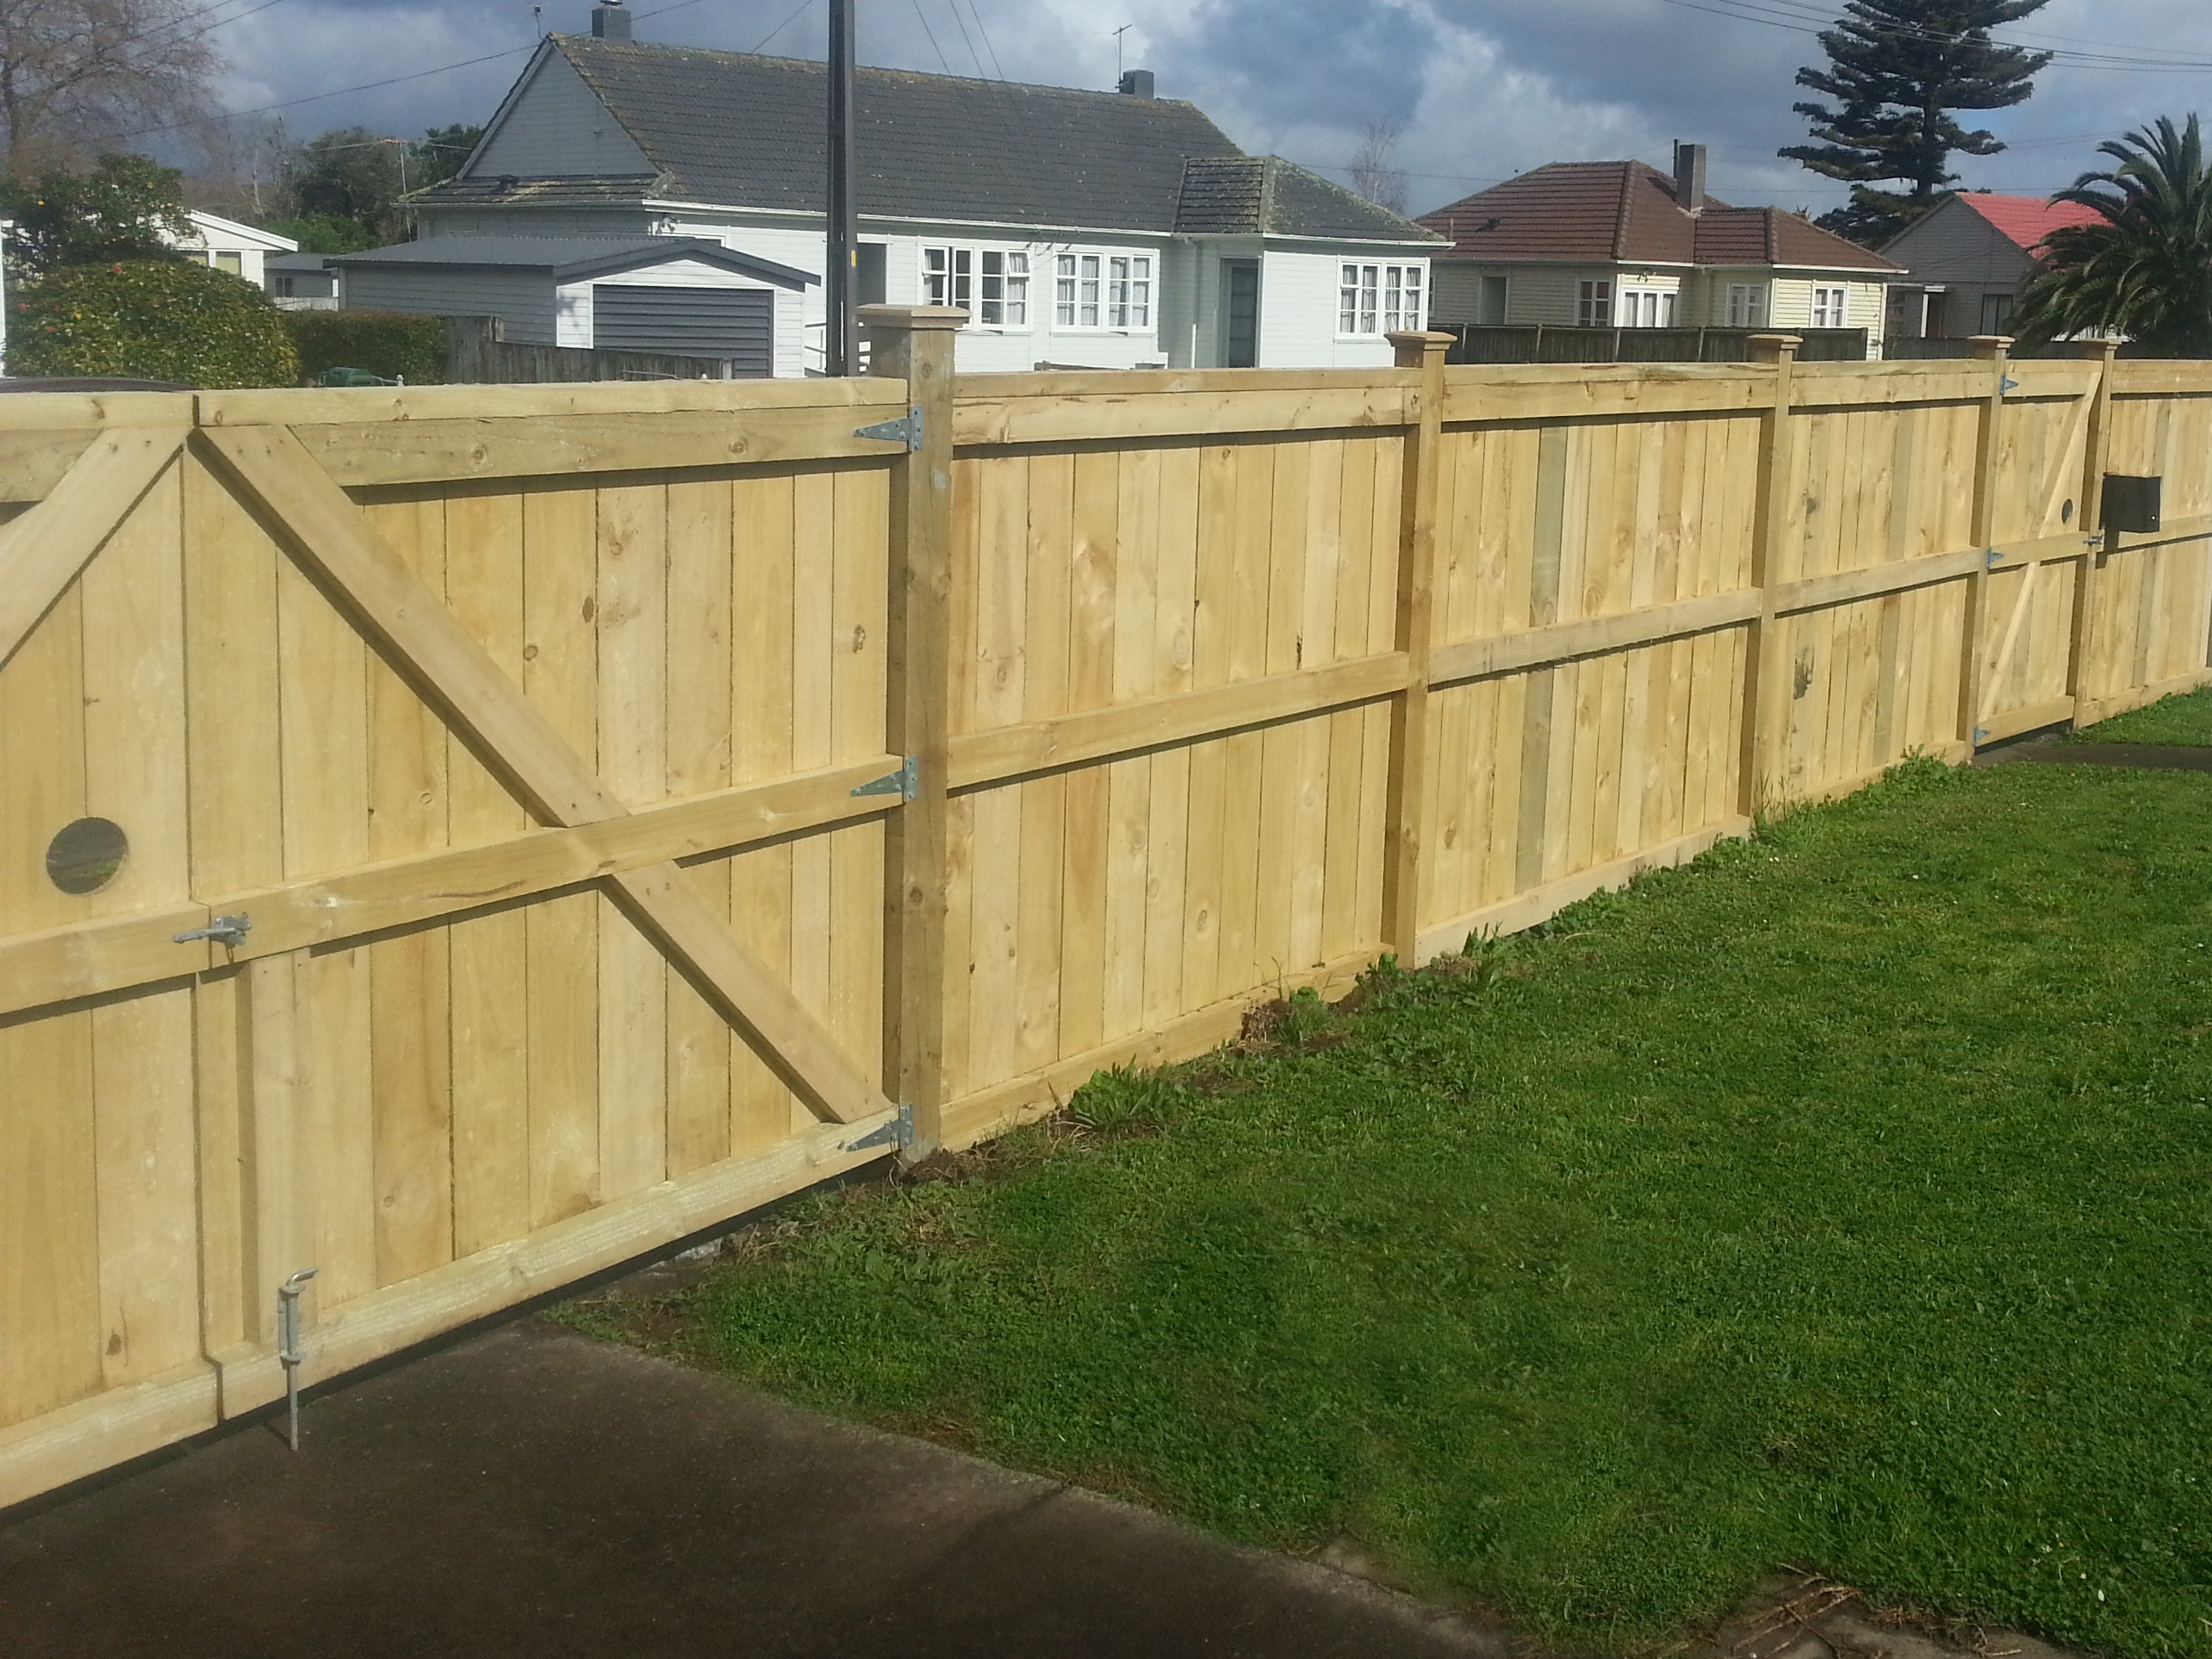 Southern Alps wooden fence with driveway & pedestrian gate